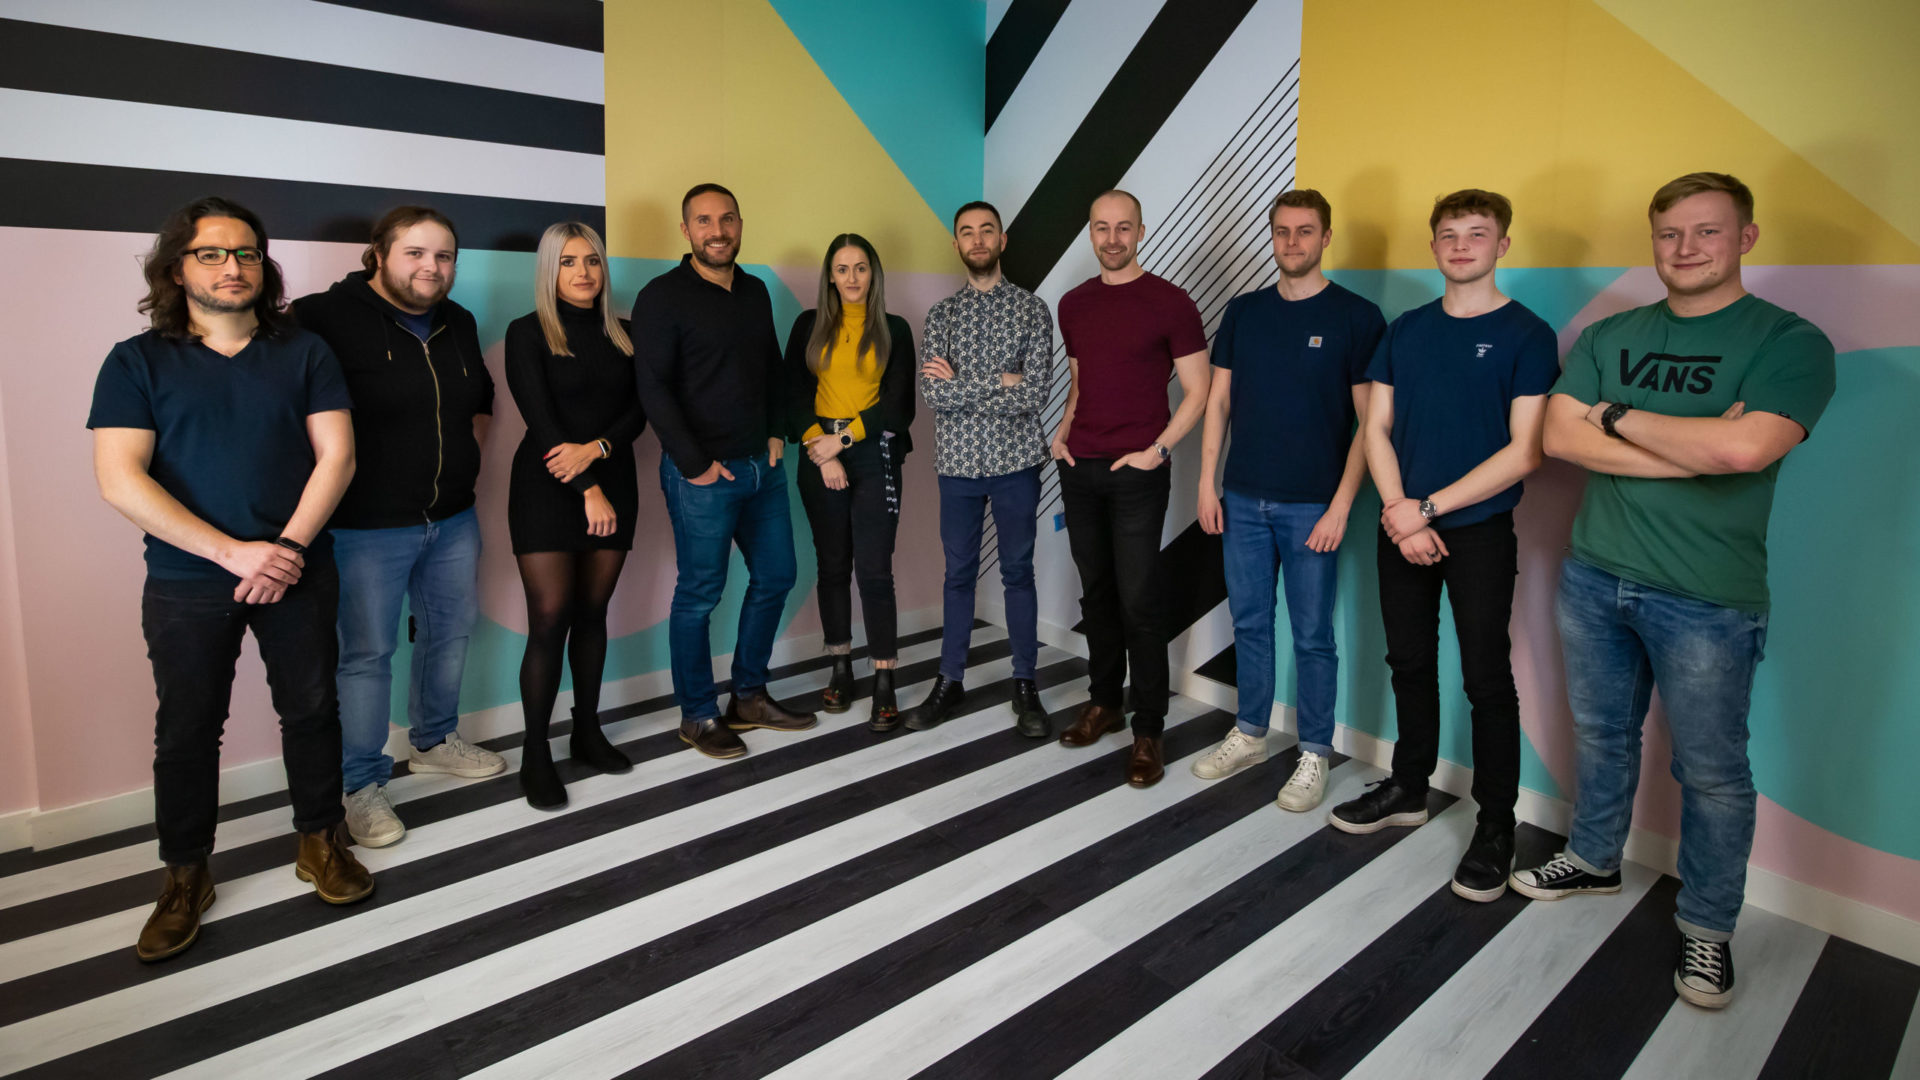 The Pixel Kicks team in our Huckletree office